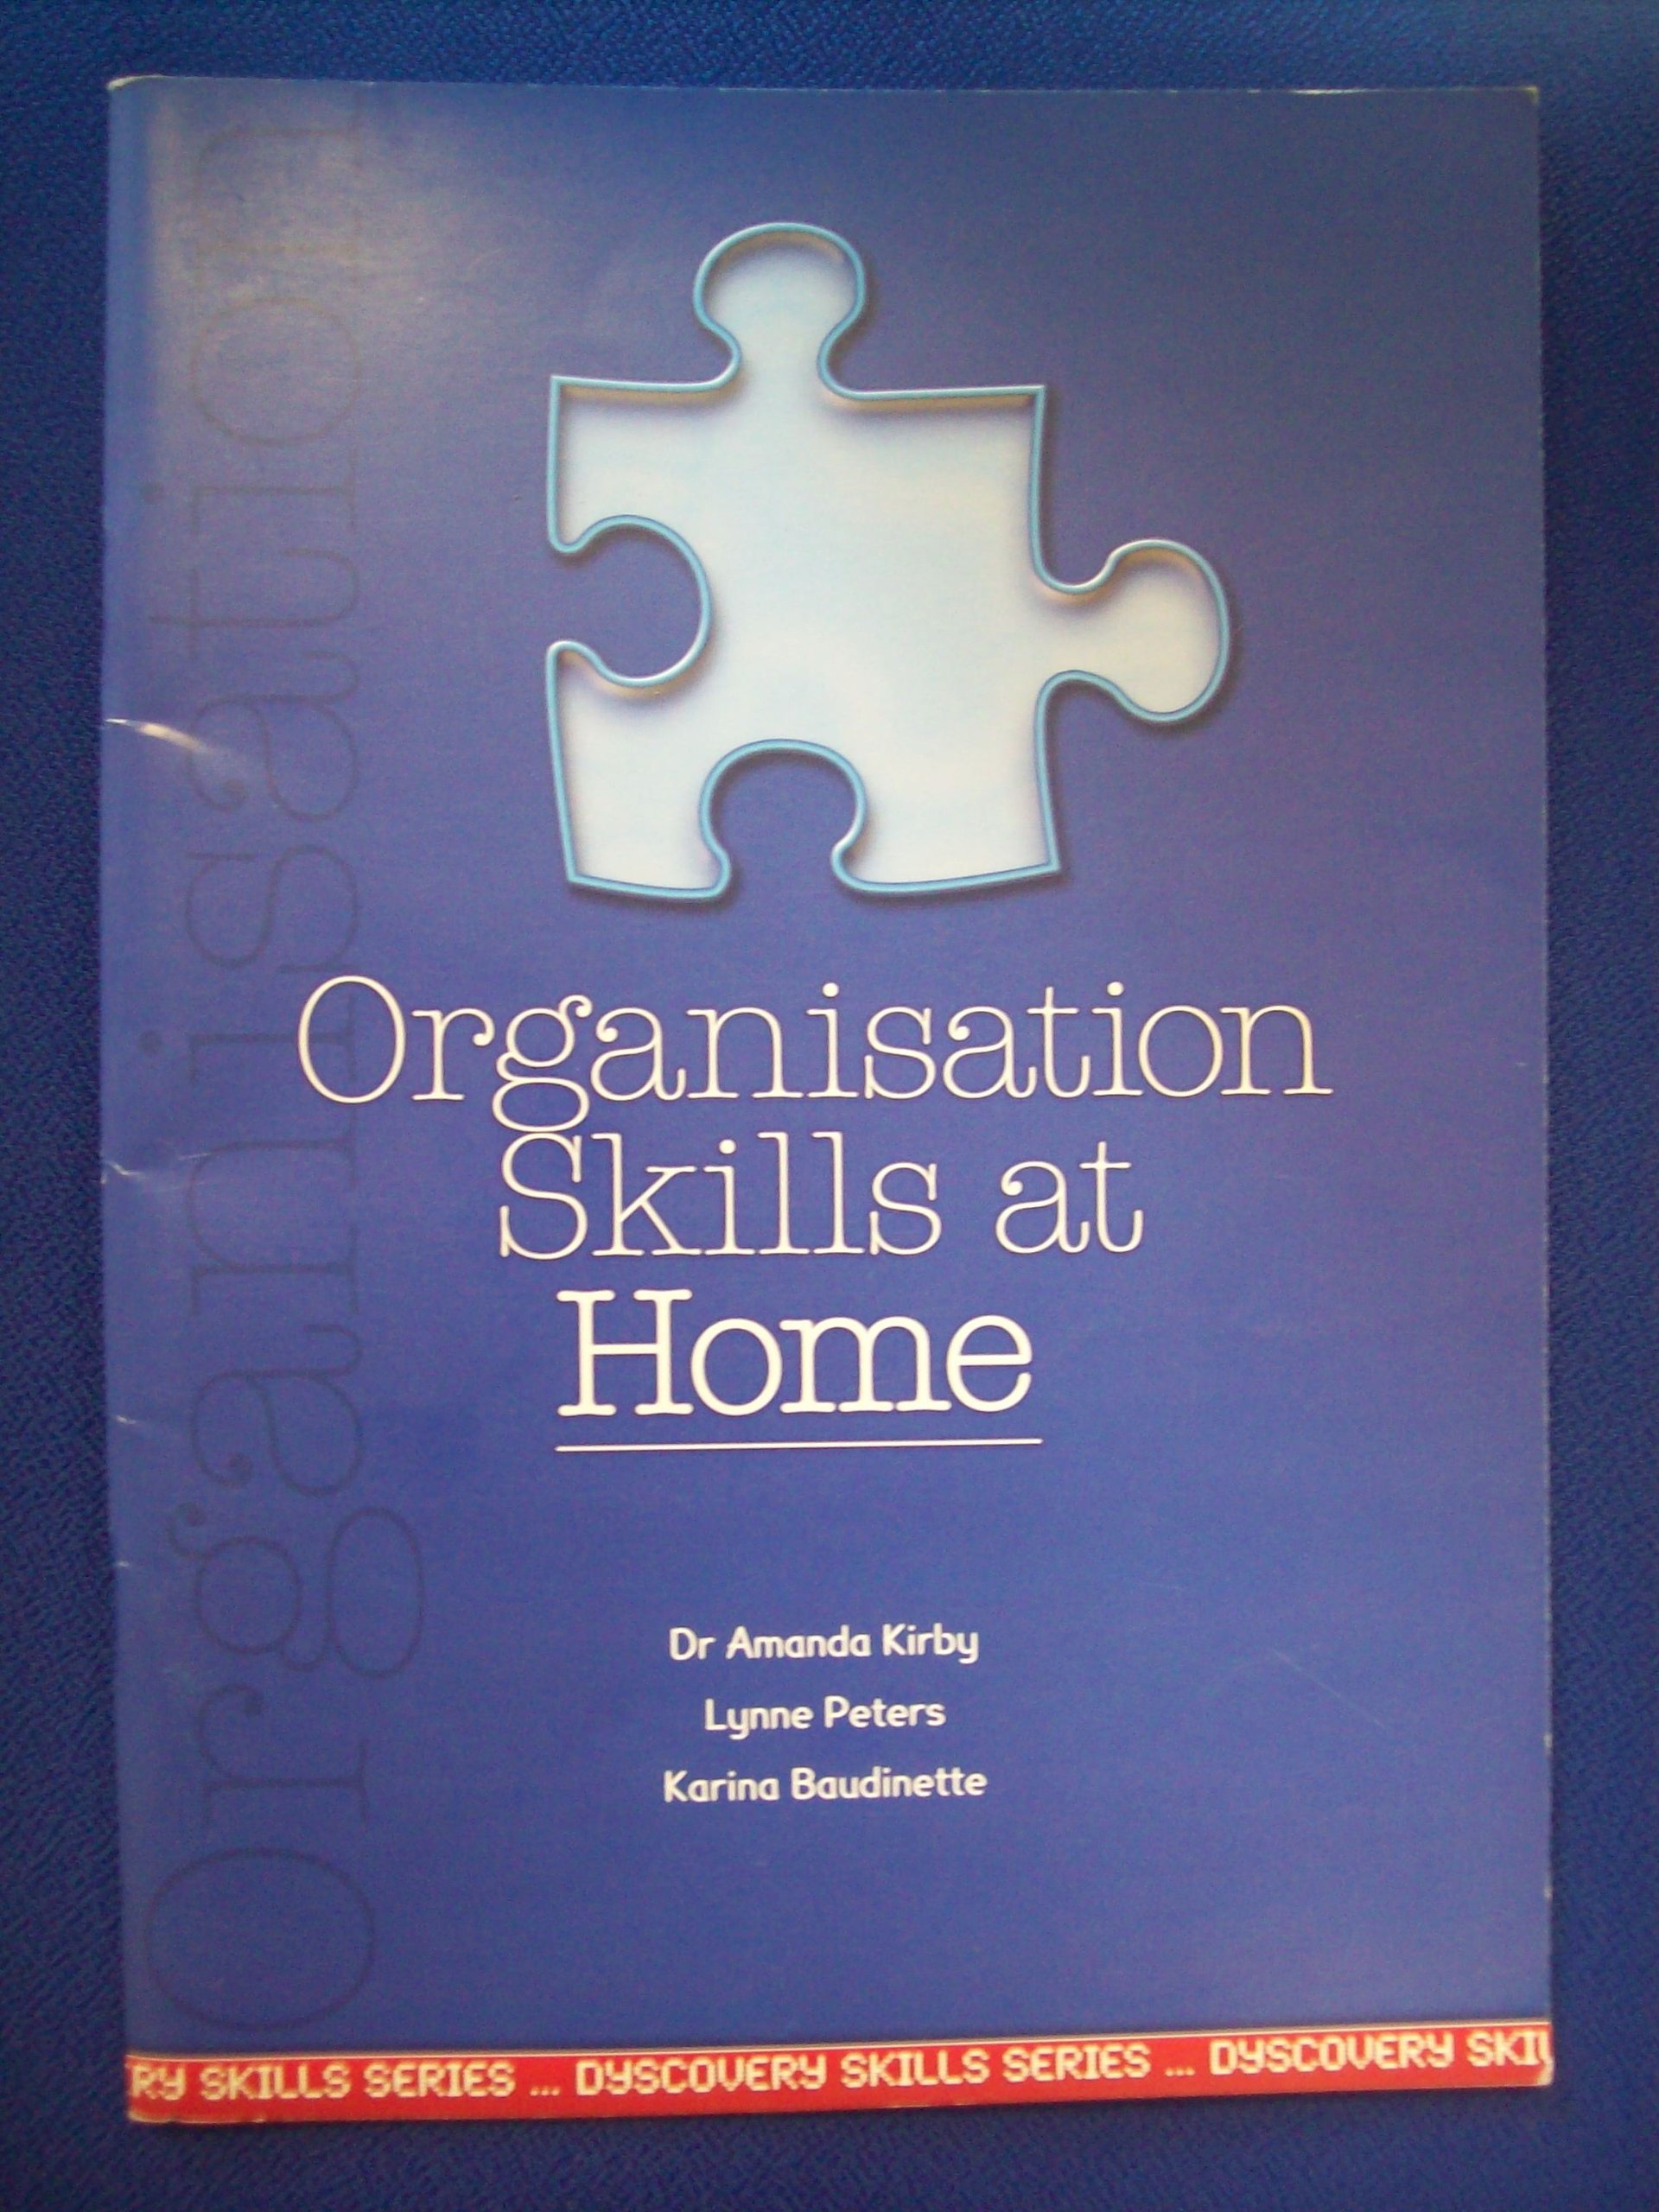 organisation skills at home dyscovery skills series andrew organisation skills at home dyscovery skills series andrew kirby lynne peters karina baudinette emma kirby sld design 9780954594718 com